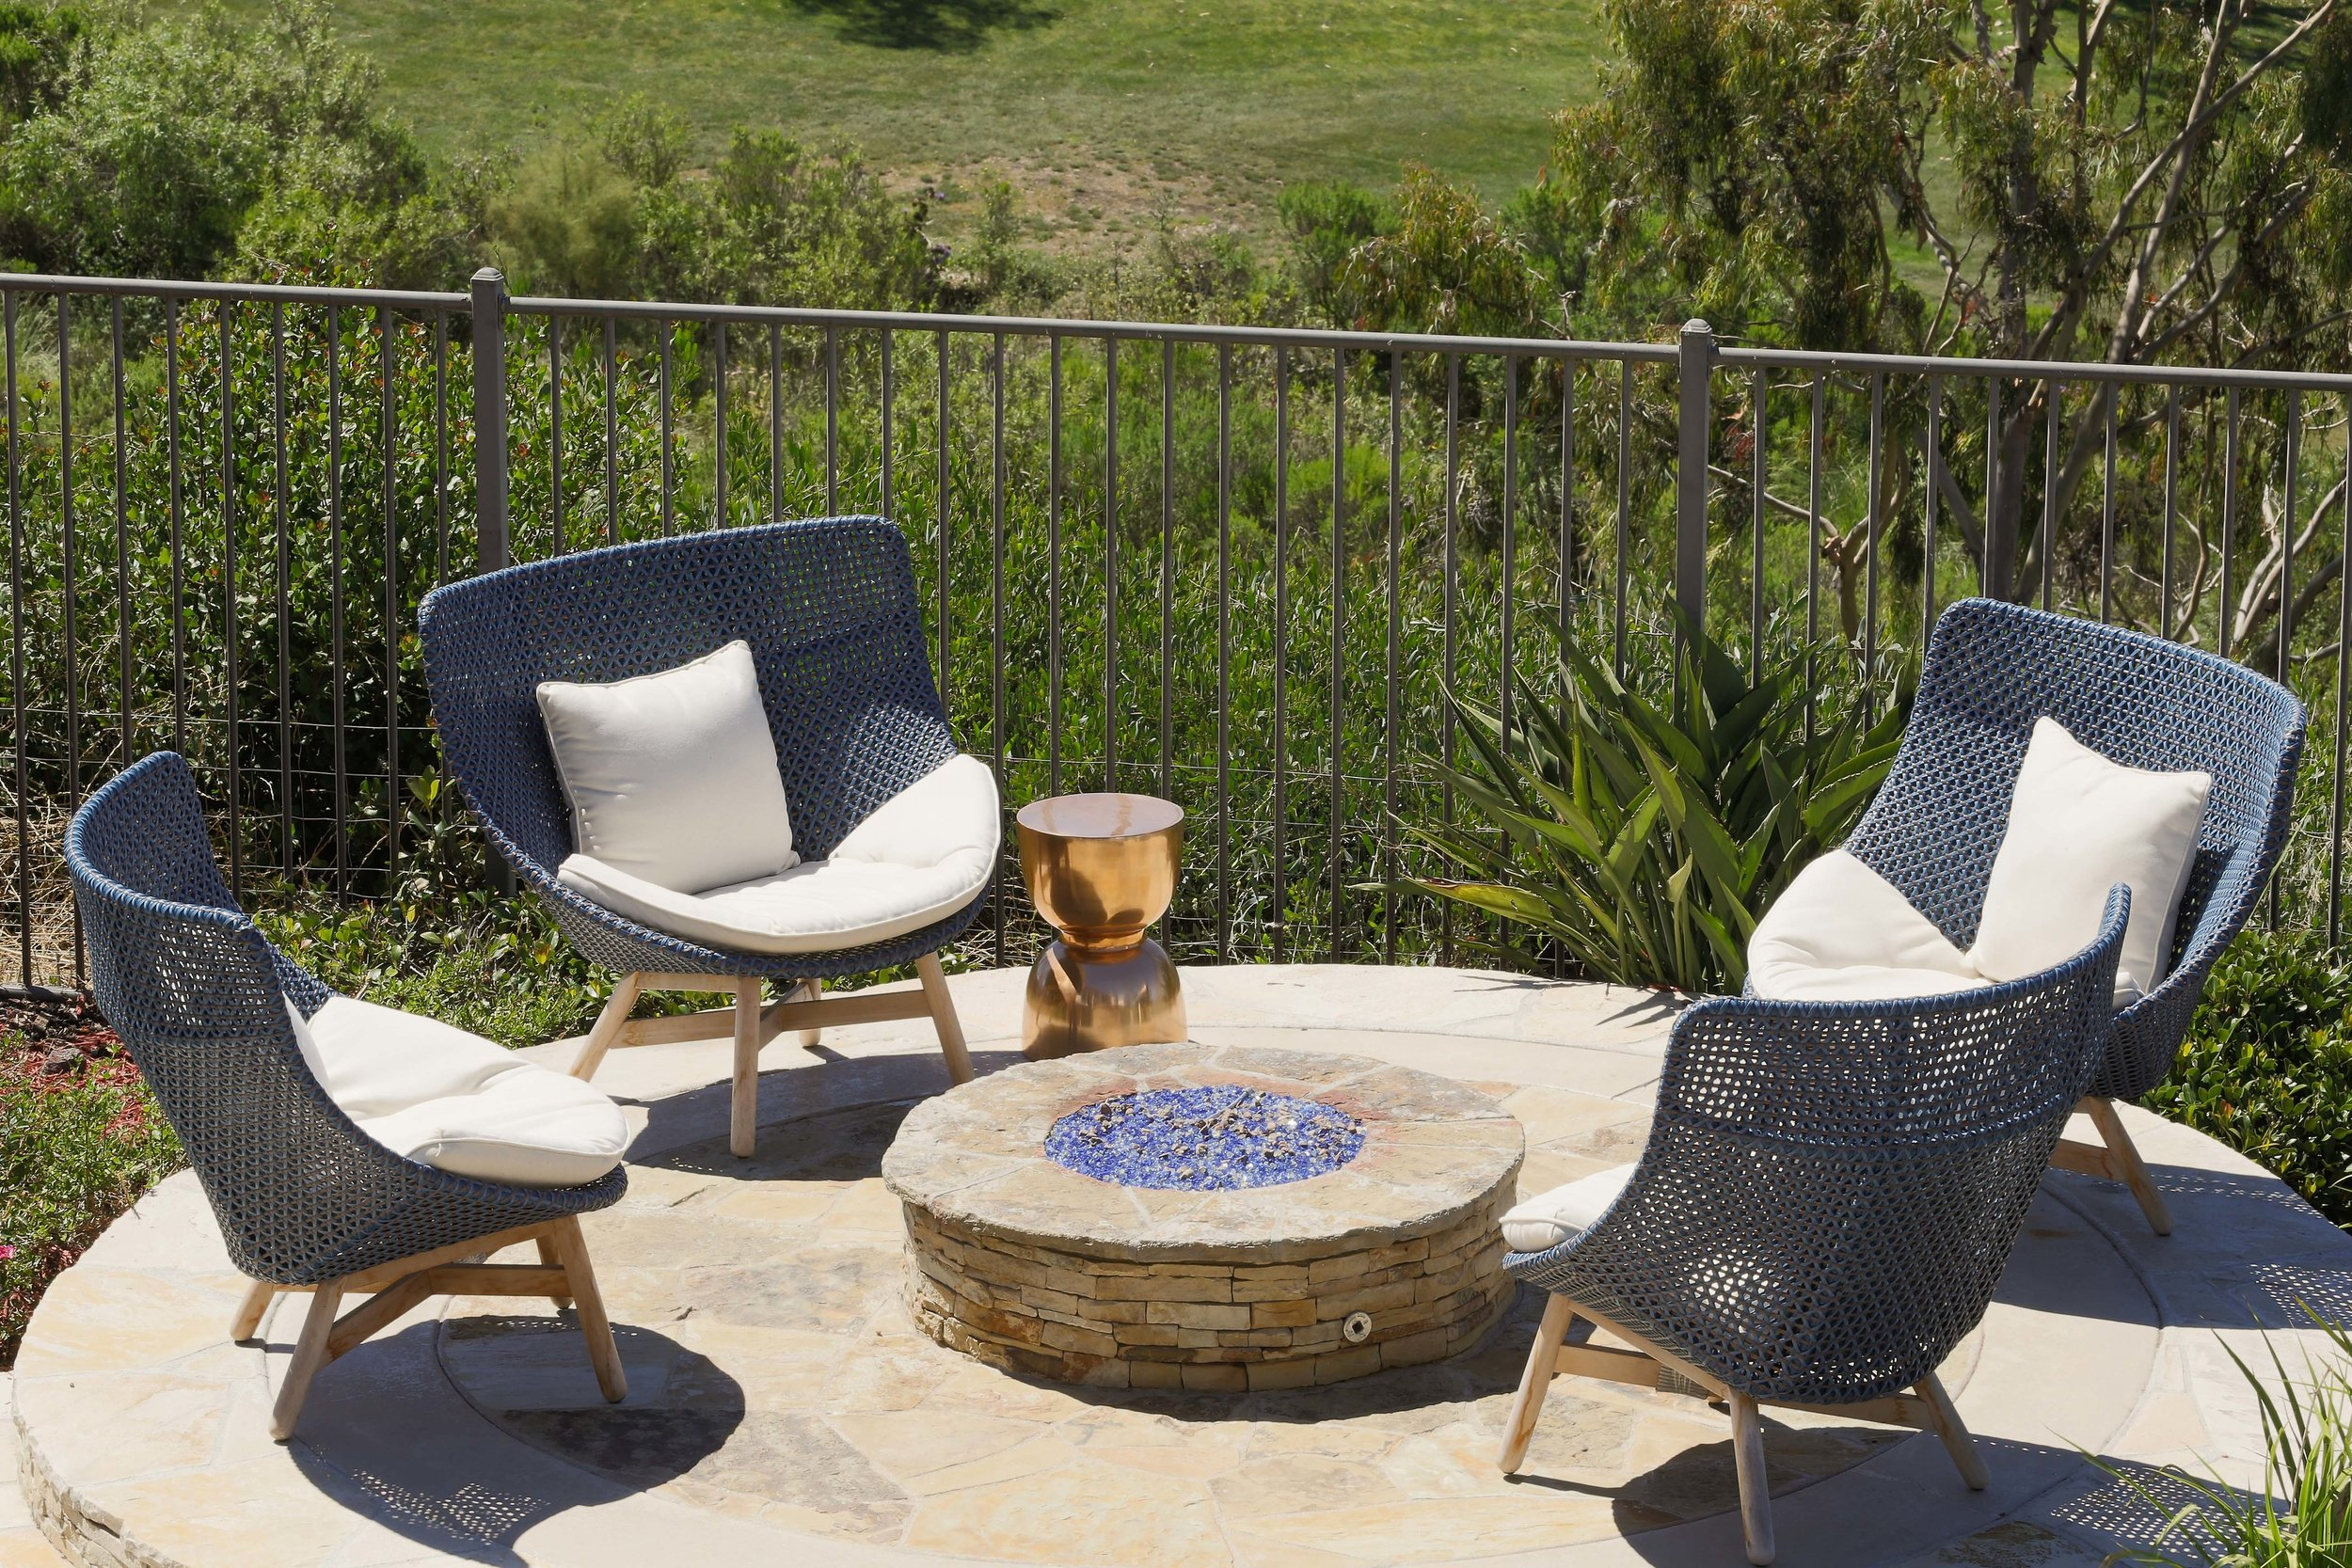 The large scale of these Dedon chairs worked perfectly in this firepit area.